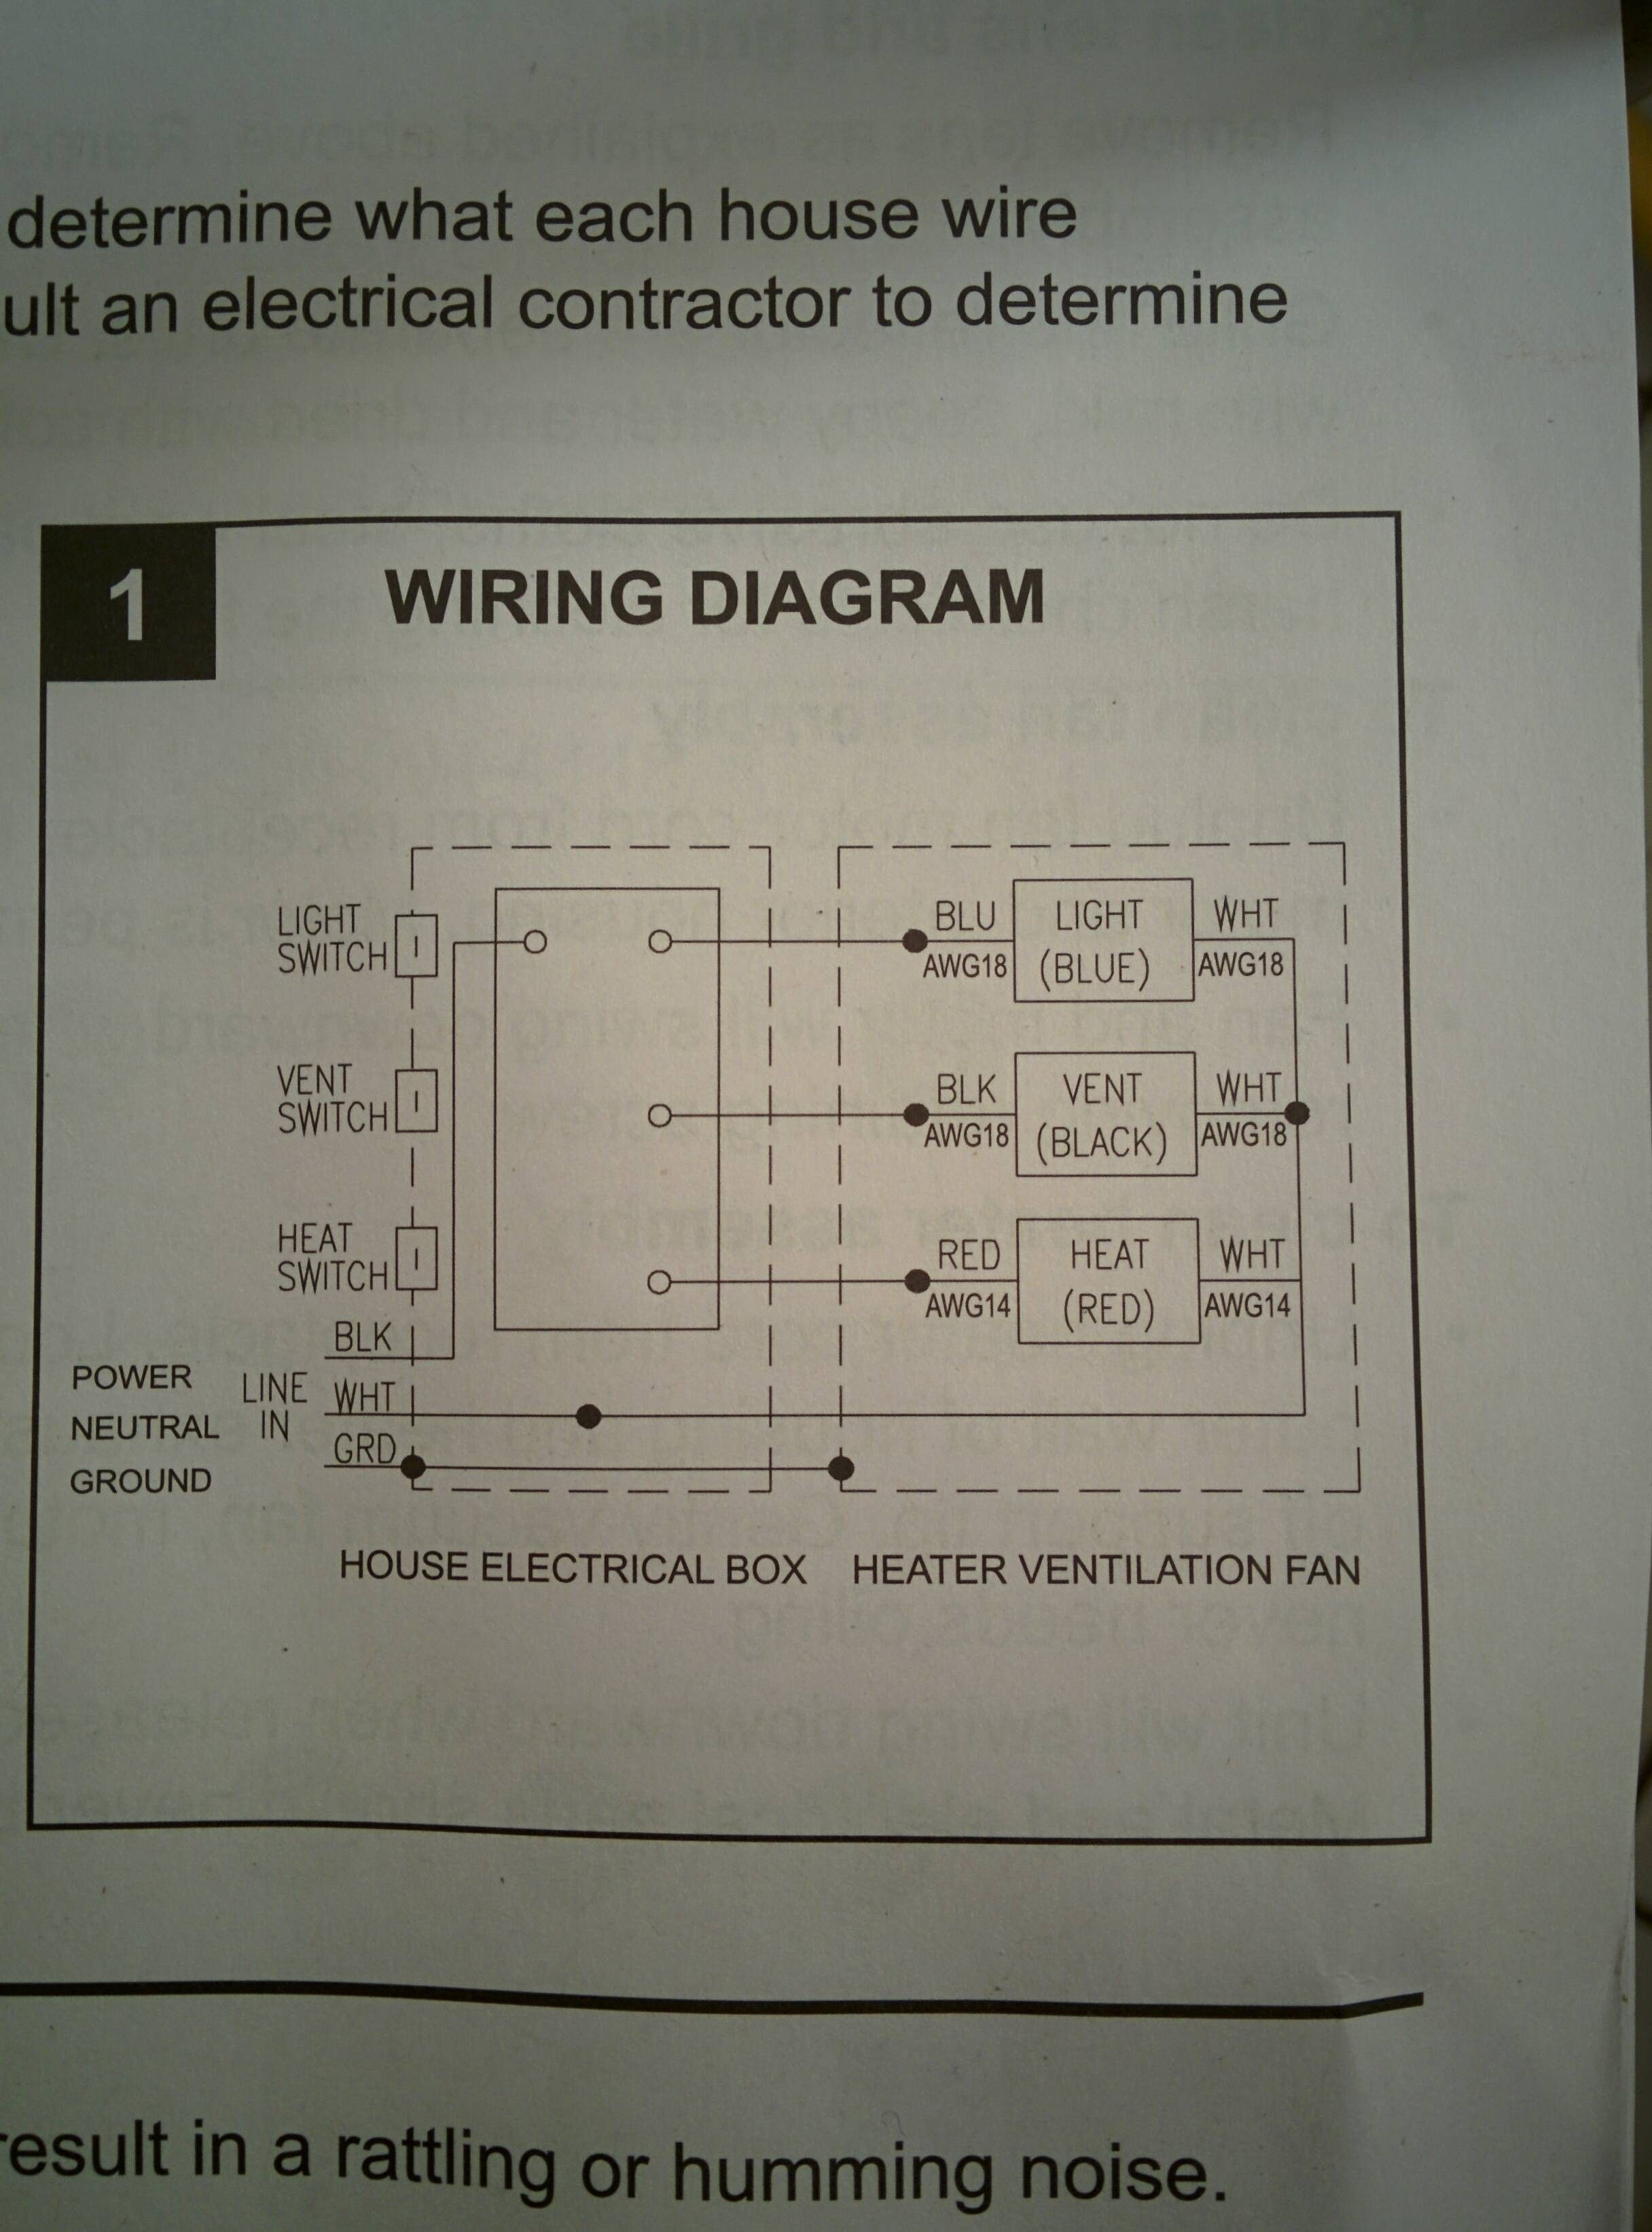 unique wiring diagram for extractor fan with timer diagram diagramsample diagramtemplate wiringdiagram diagramchart worksheet worksheettemplate [ 2432 x 3286 Pixel ]